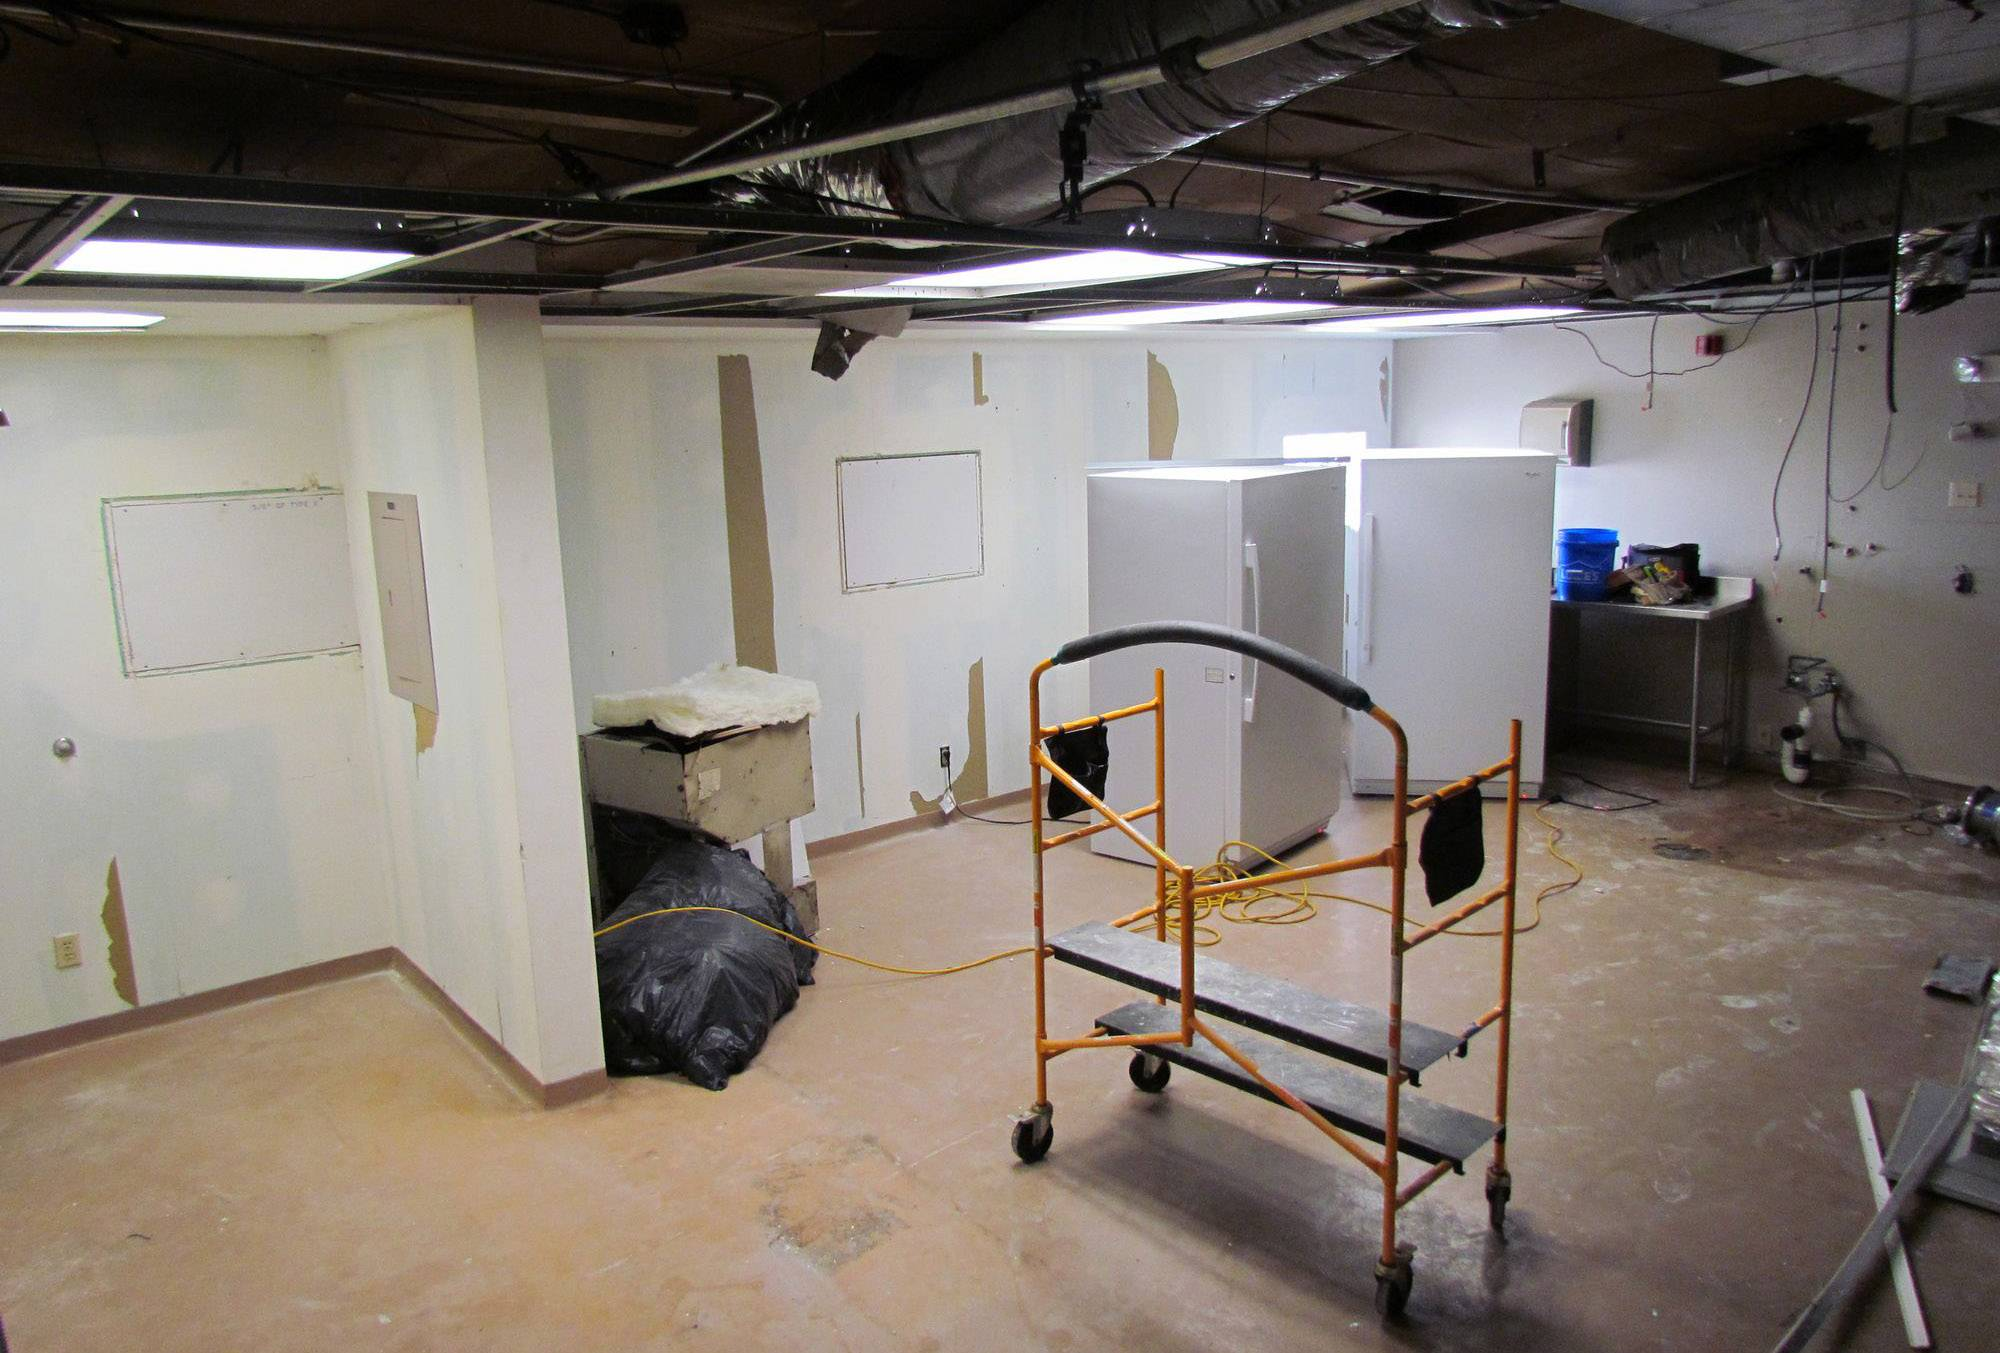 Renovations begin after mold shut down Kane County morgue